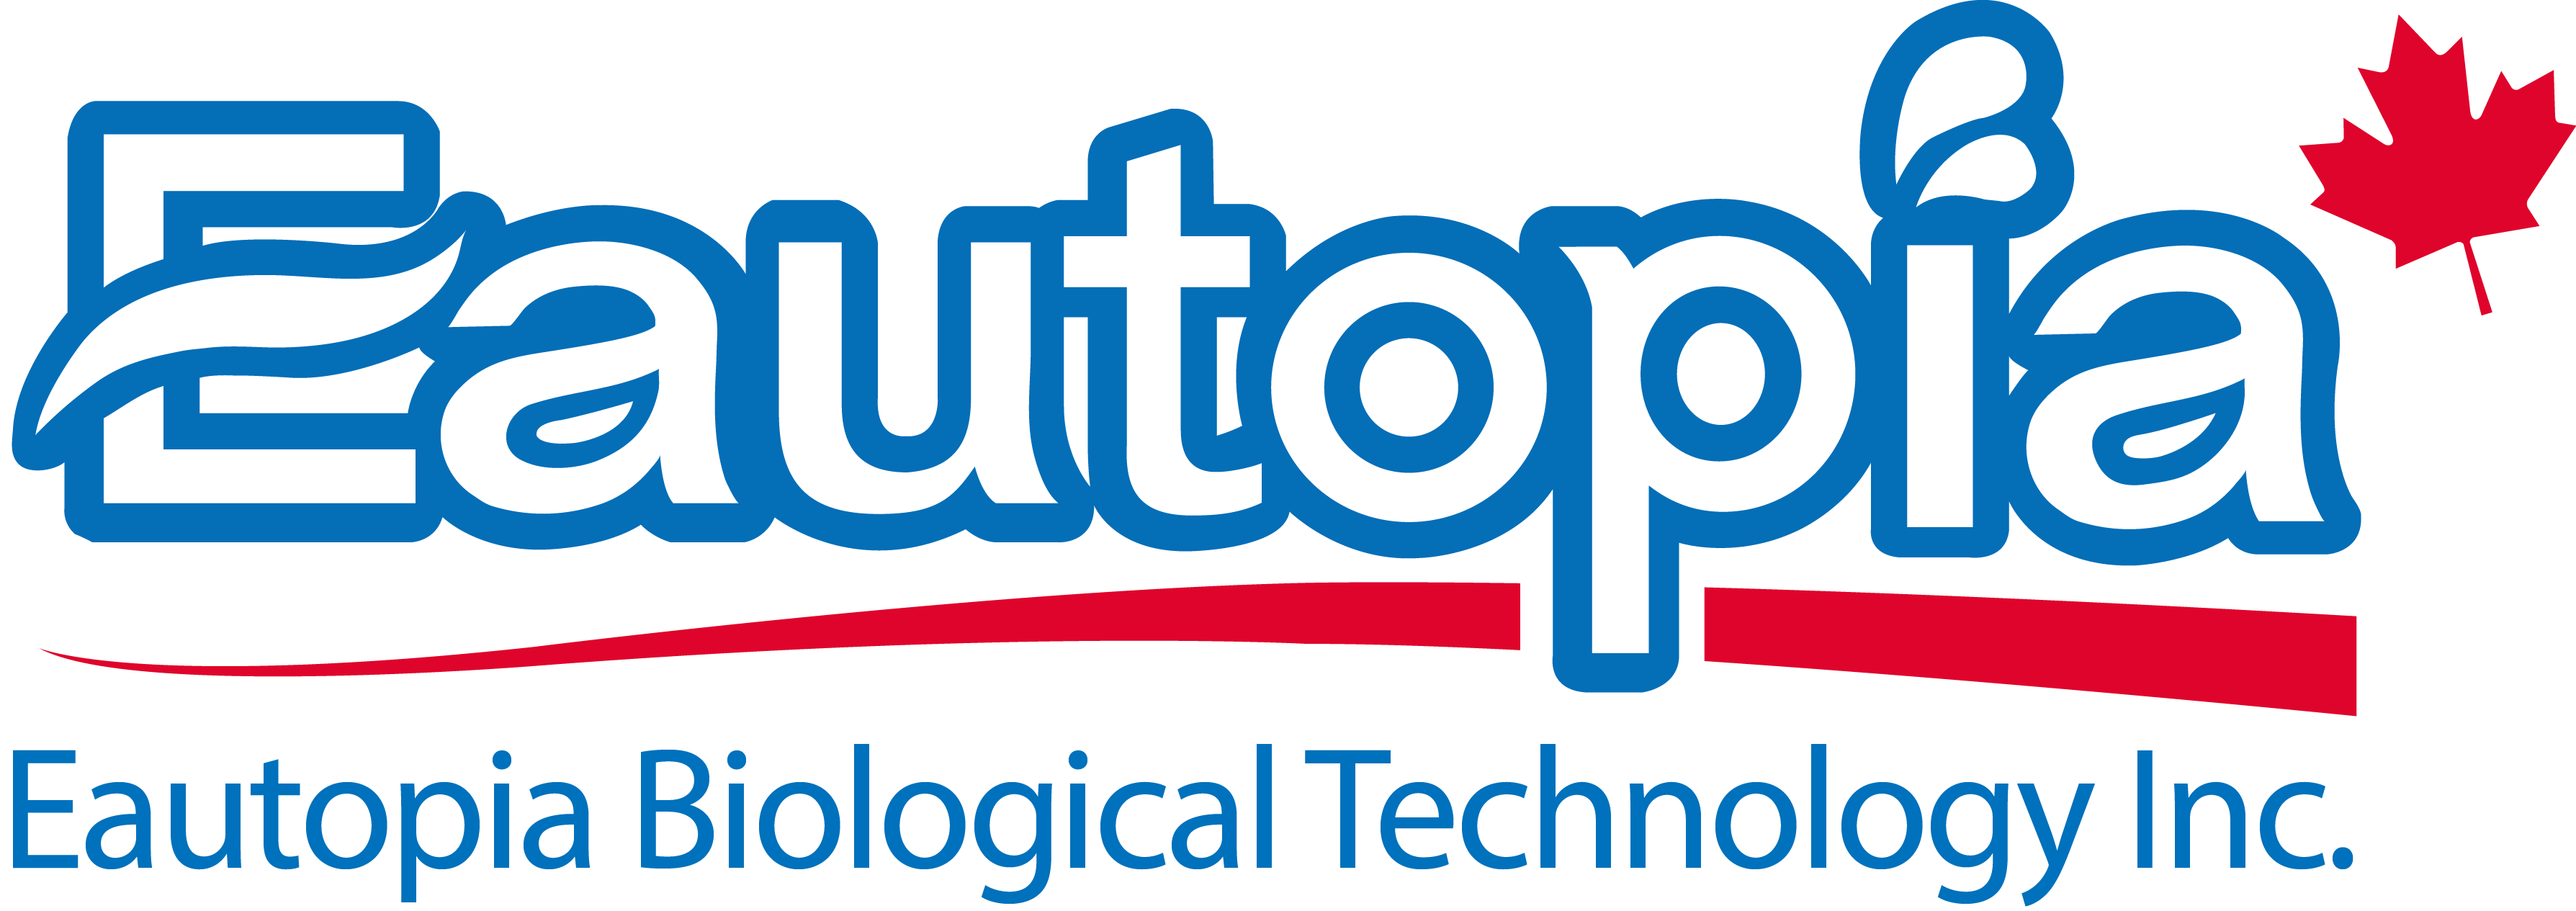 Eautopia Biological Technology Inc.